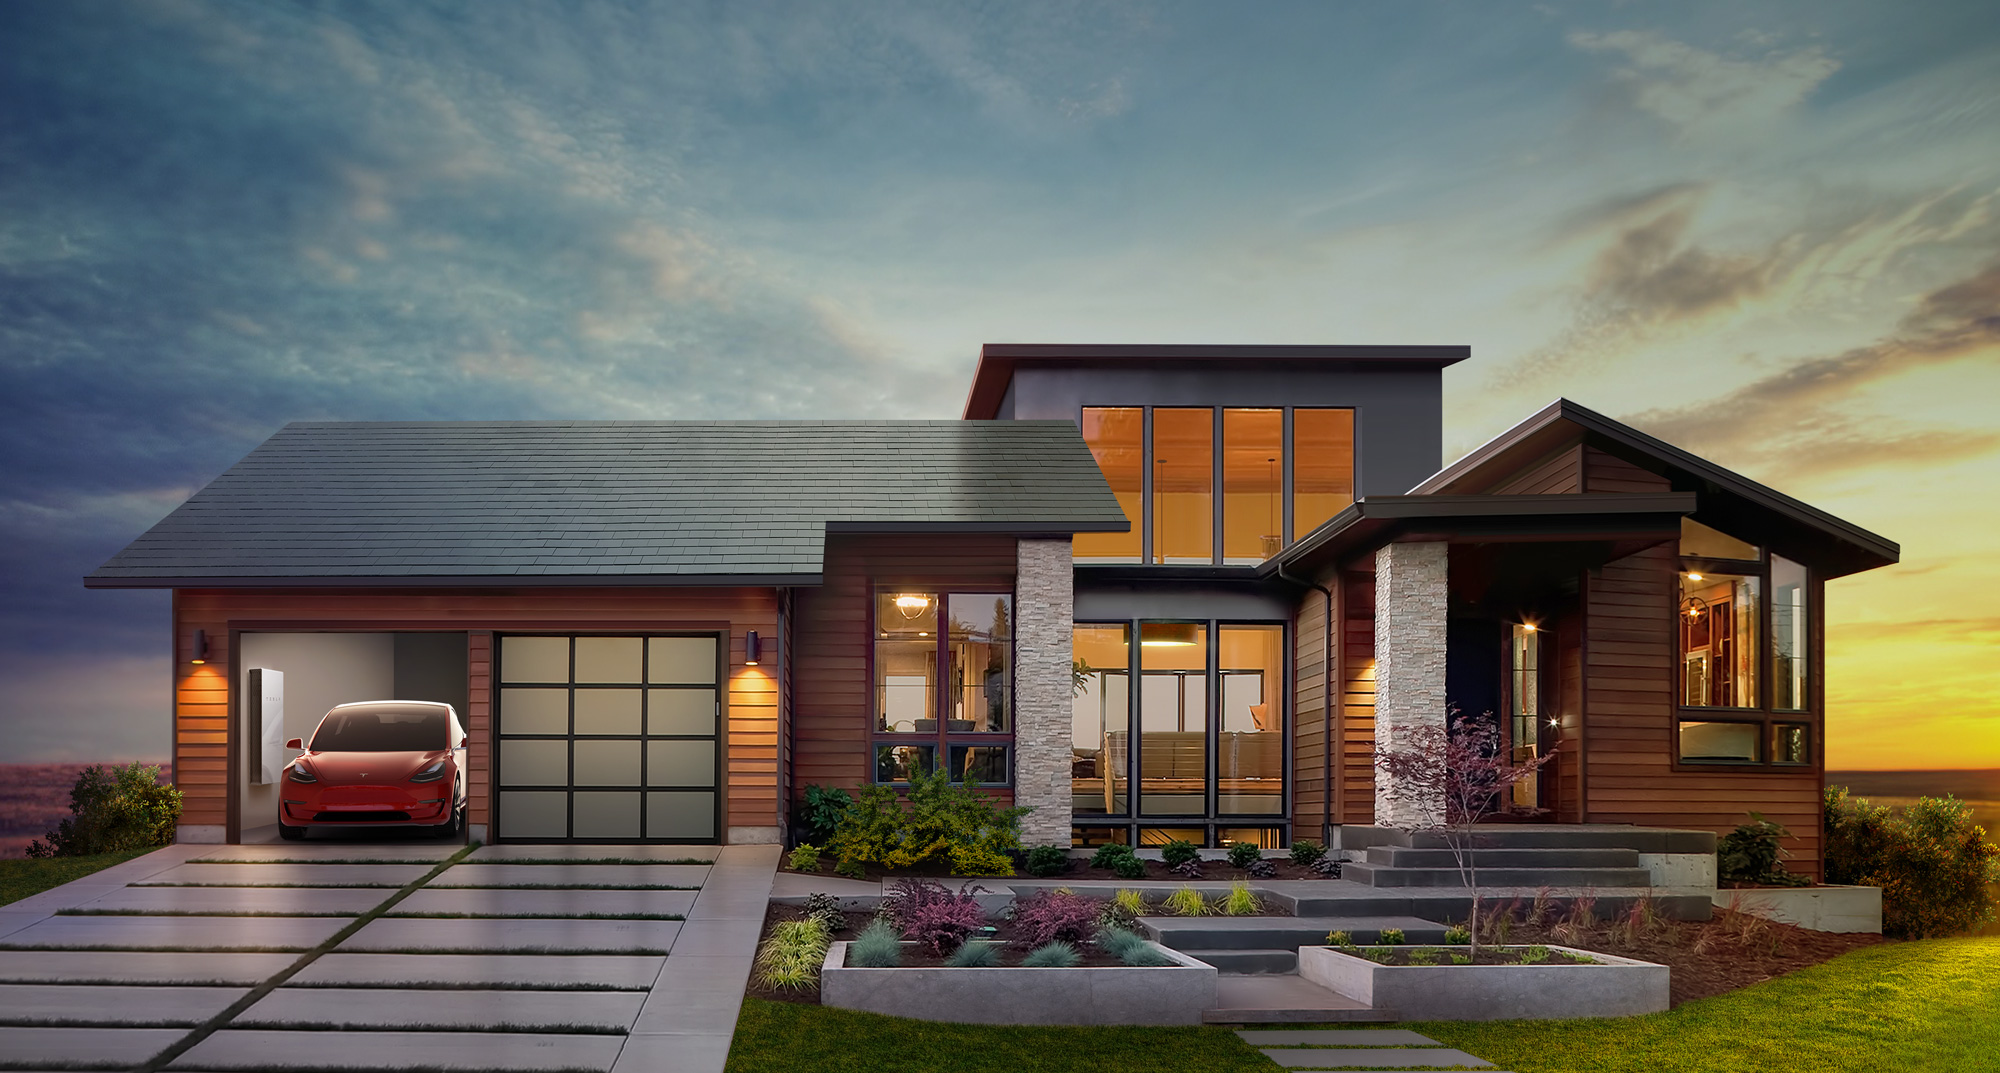 SolarCity unveiled a new solar roof that could be customized for individual homes, but it may be pricey.